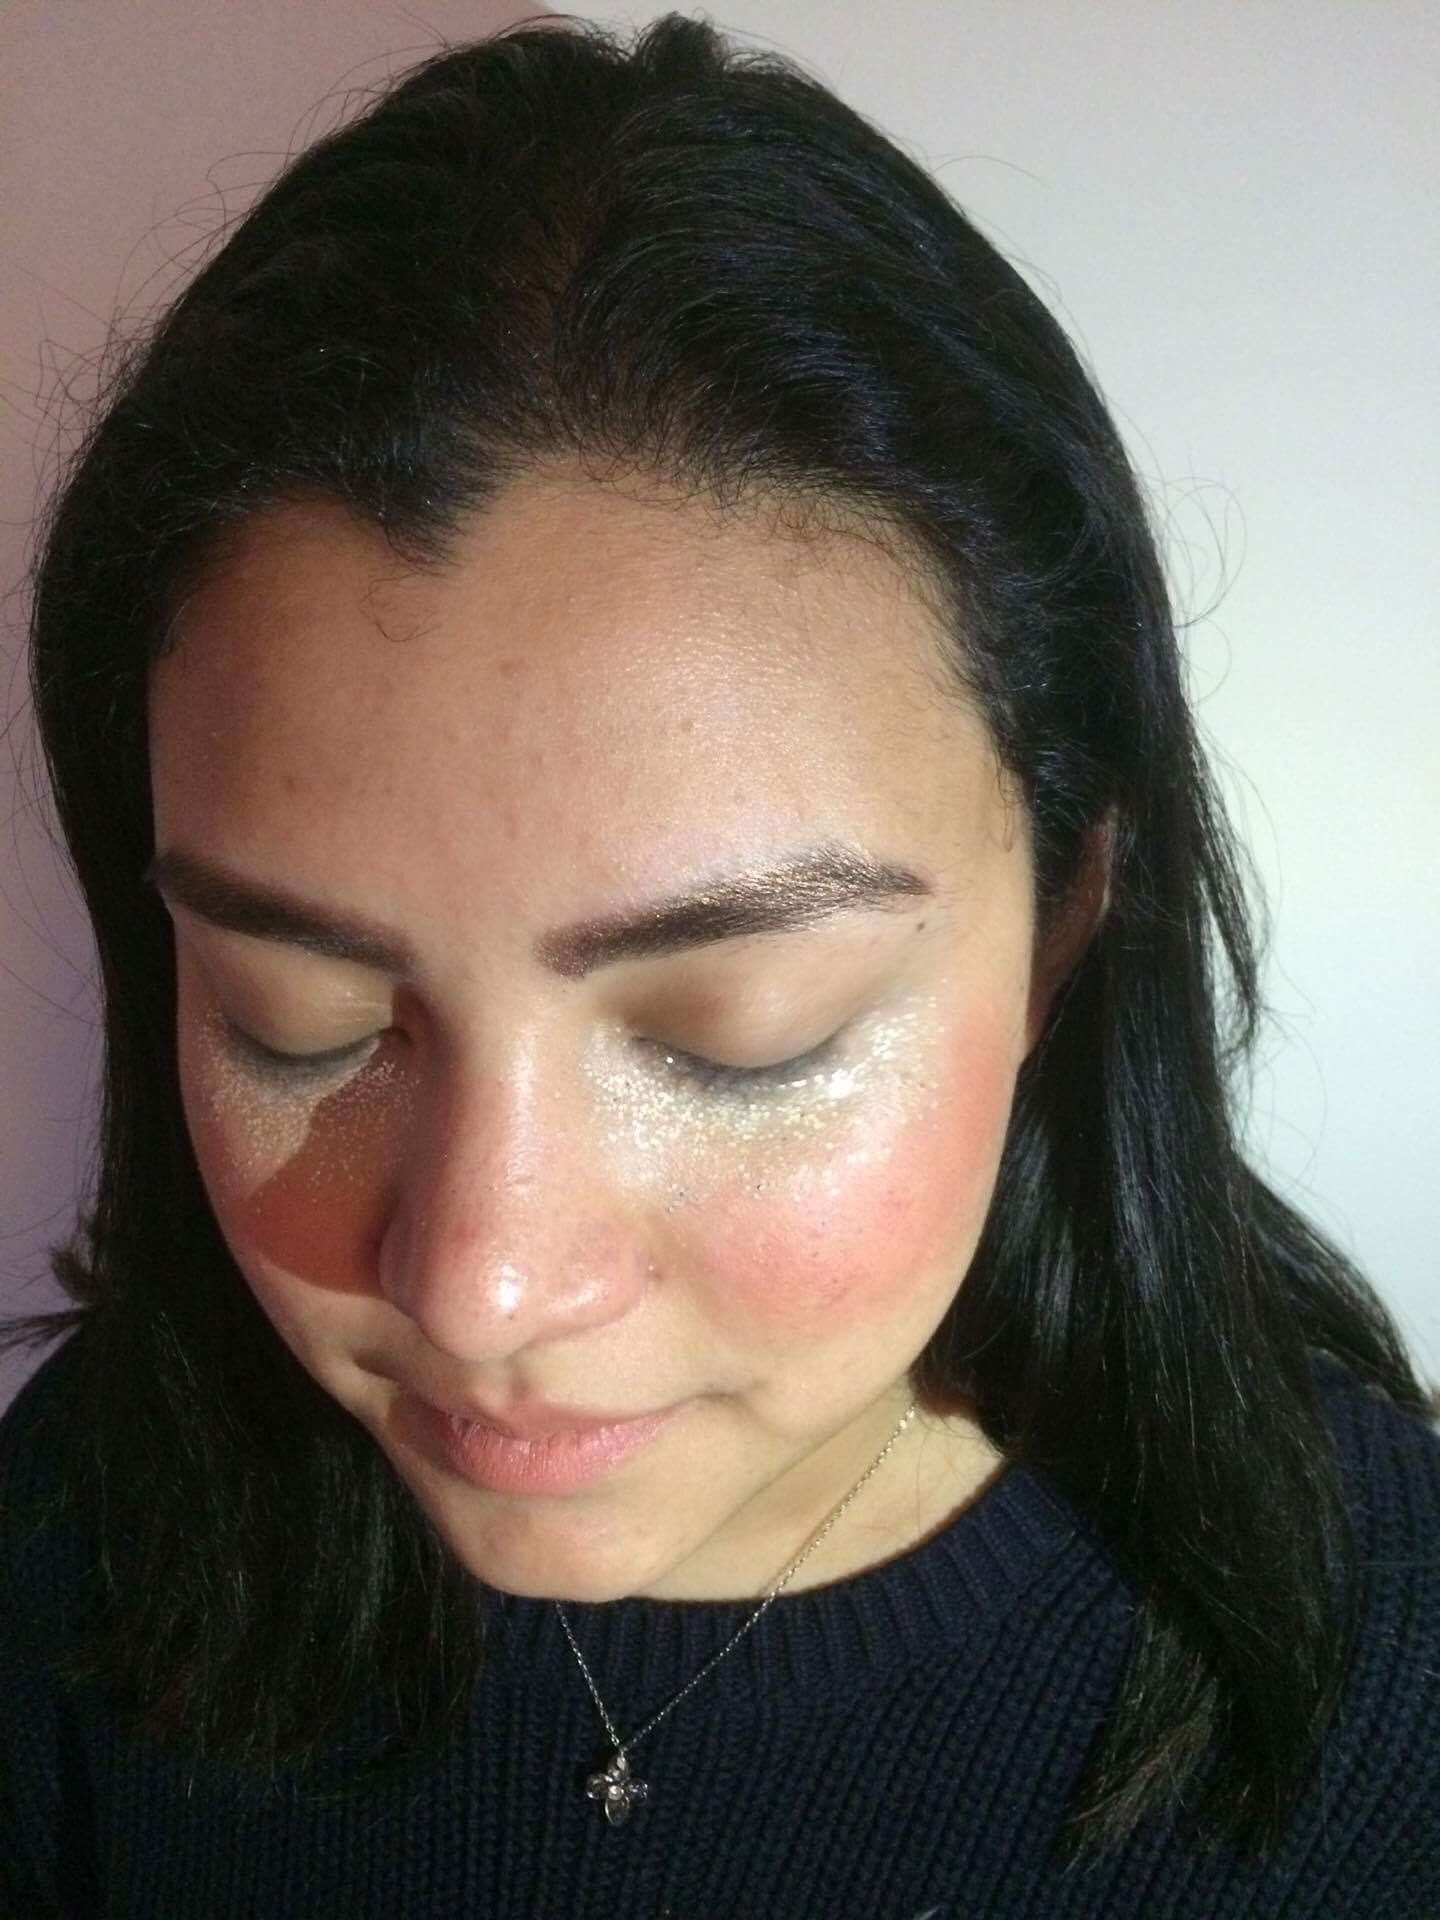 Sargui Magandran shows off the glitter concealer technique. Her eyebrows are filled in with a gold glitter eyeshadow (the same as on the cheeks of Nicole Ip), and on her cheeks is Bite Beauty Multistick in Almond.